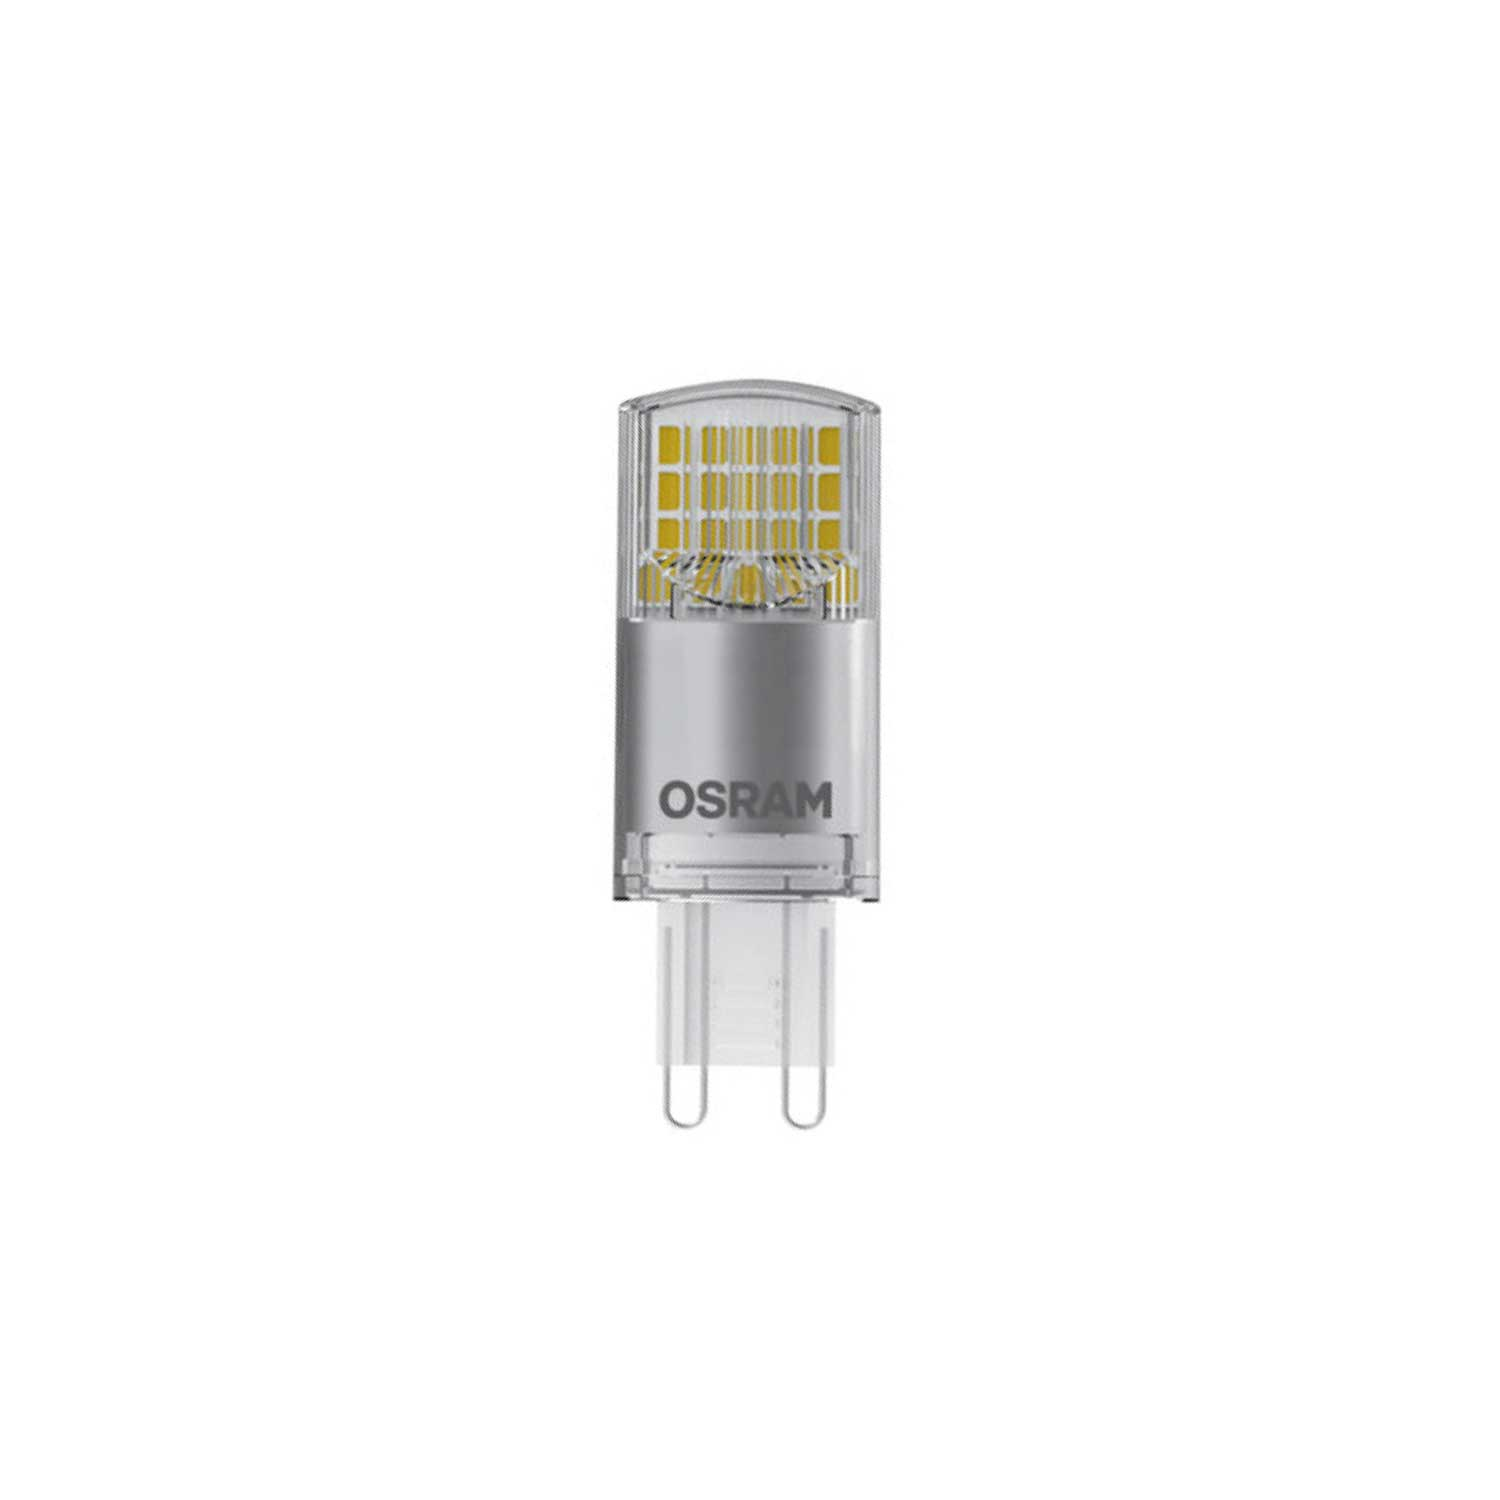 Led G9 5w Osram G9 Led 3 5w 2700k Dimmable